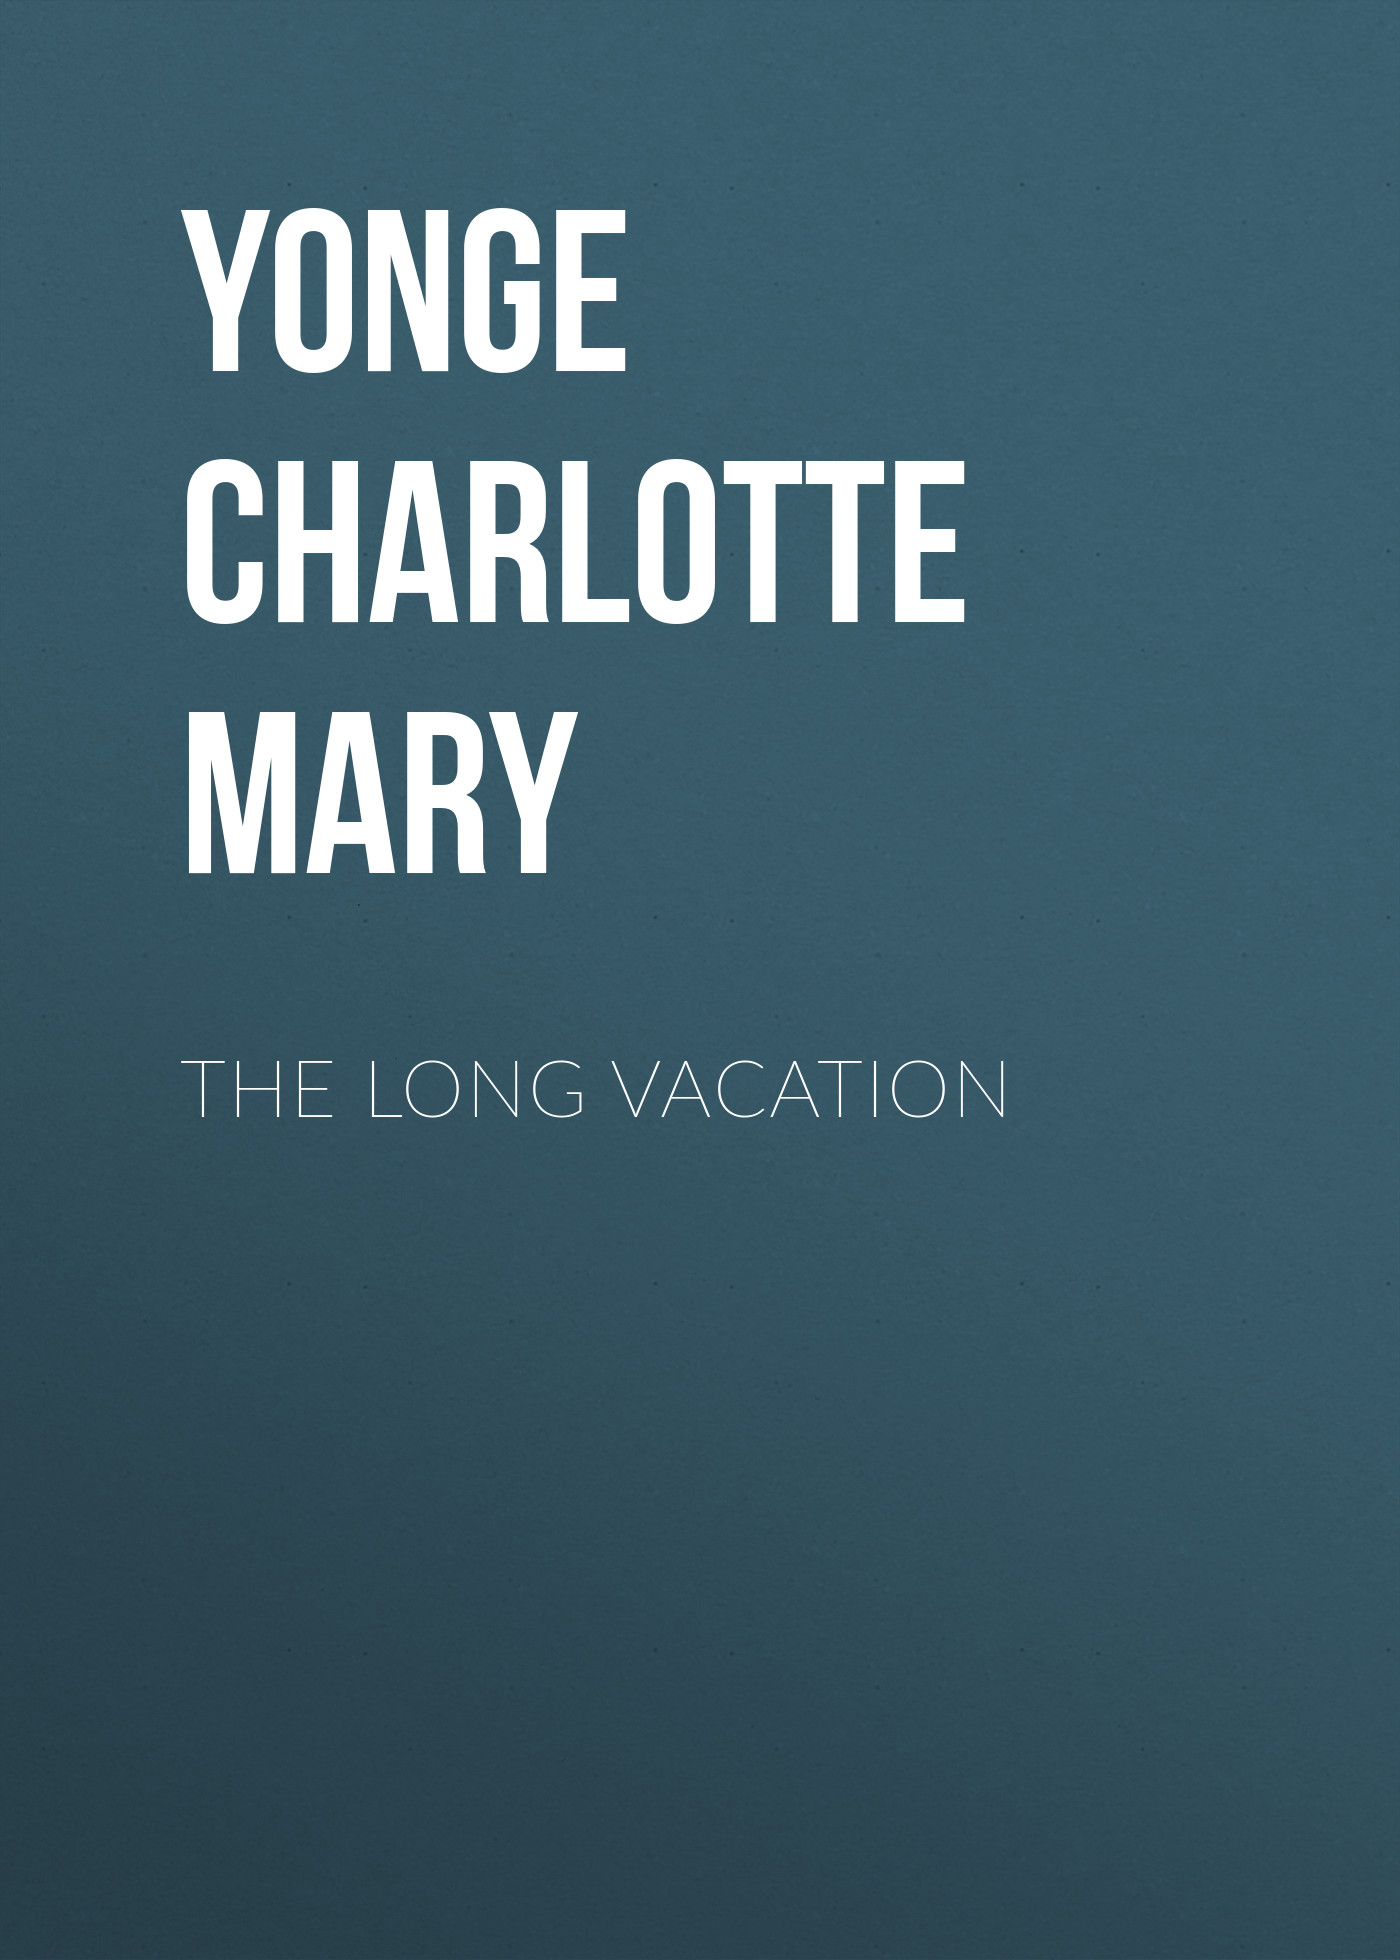 лучшая цена Yonge Charlotte Mary The Long Vacation